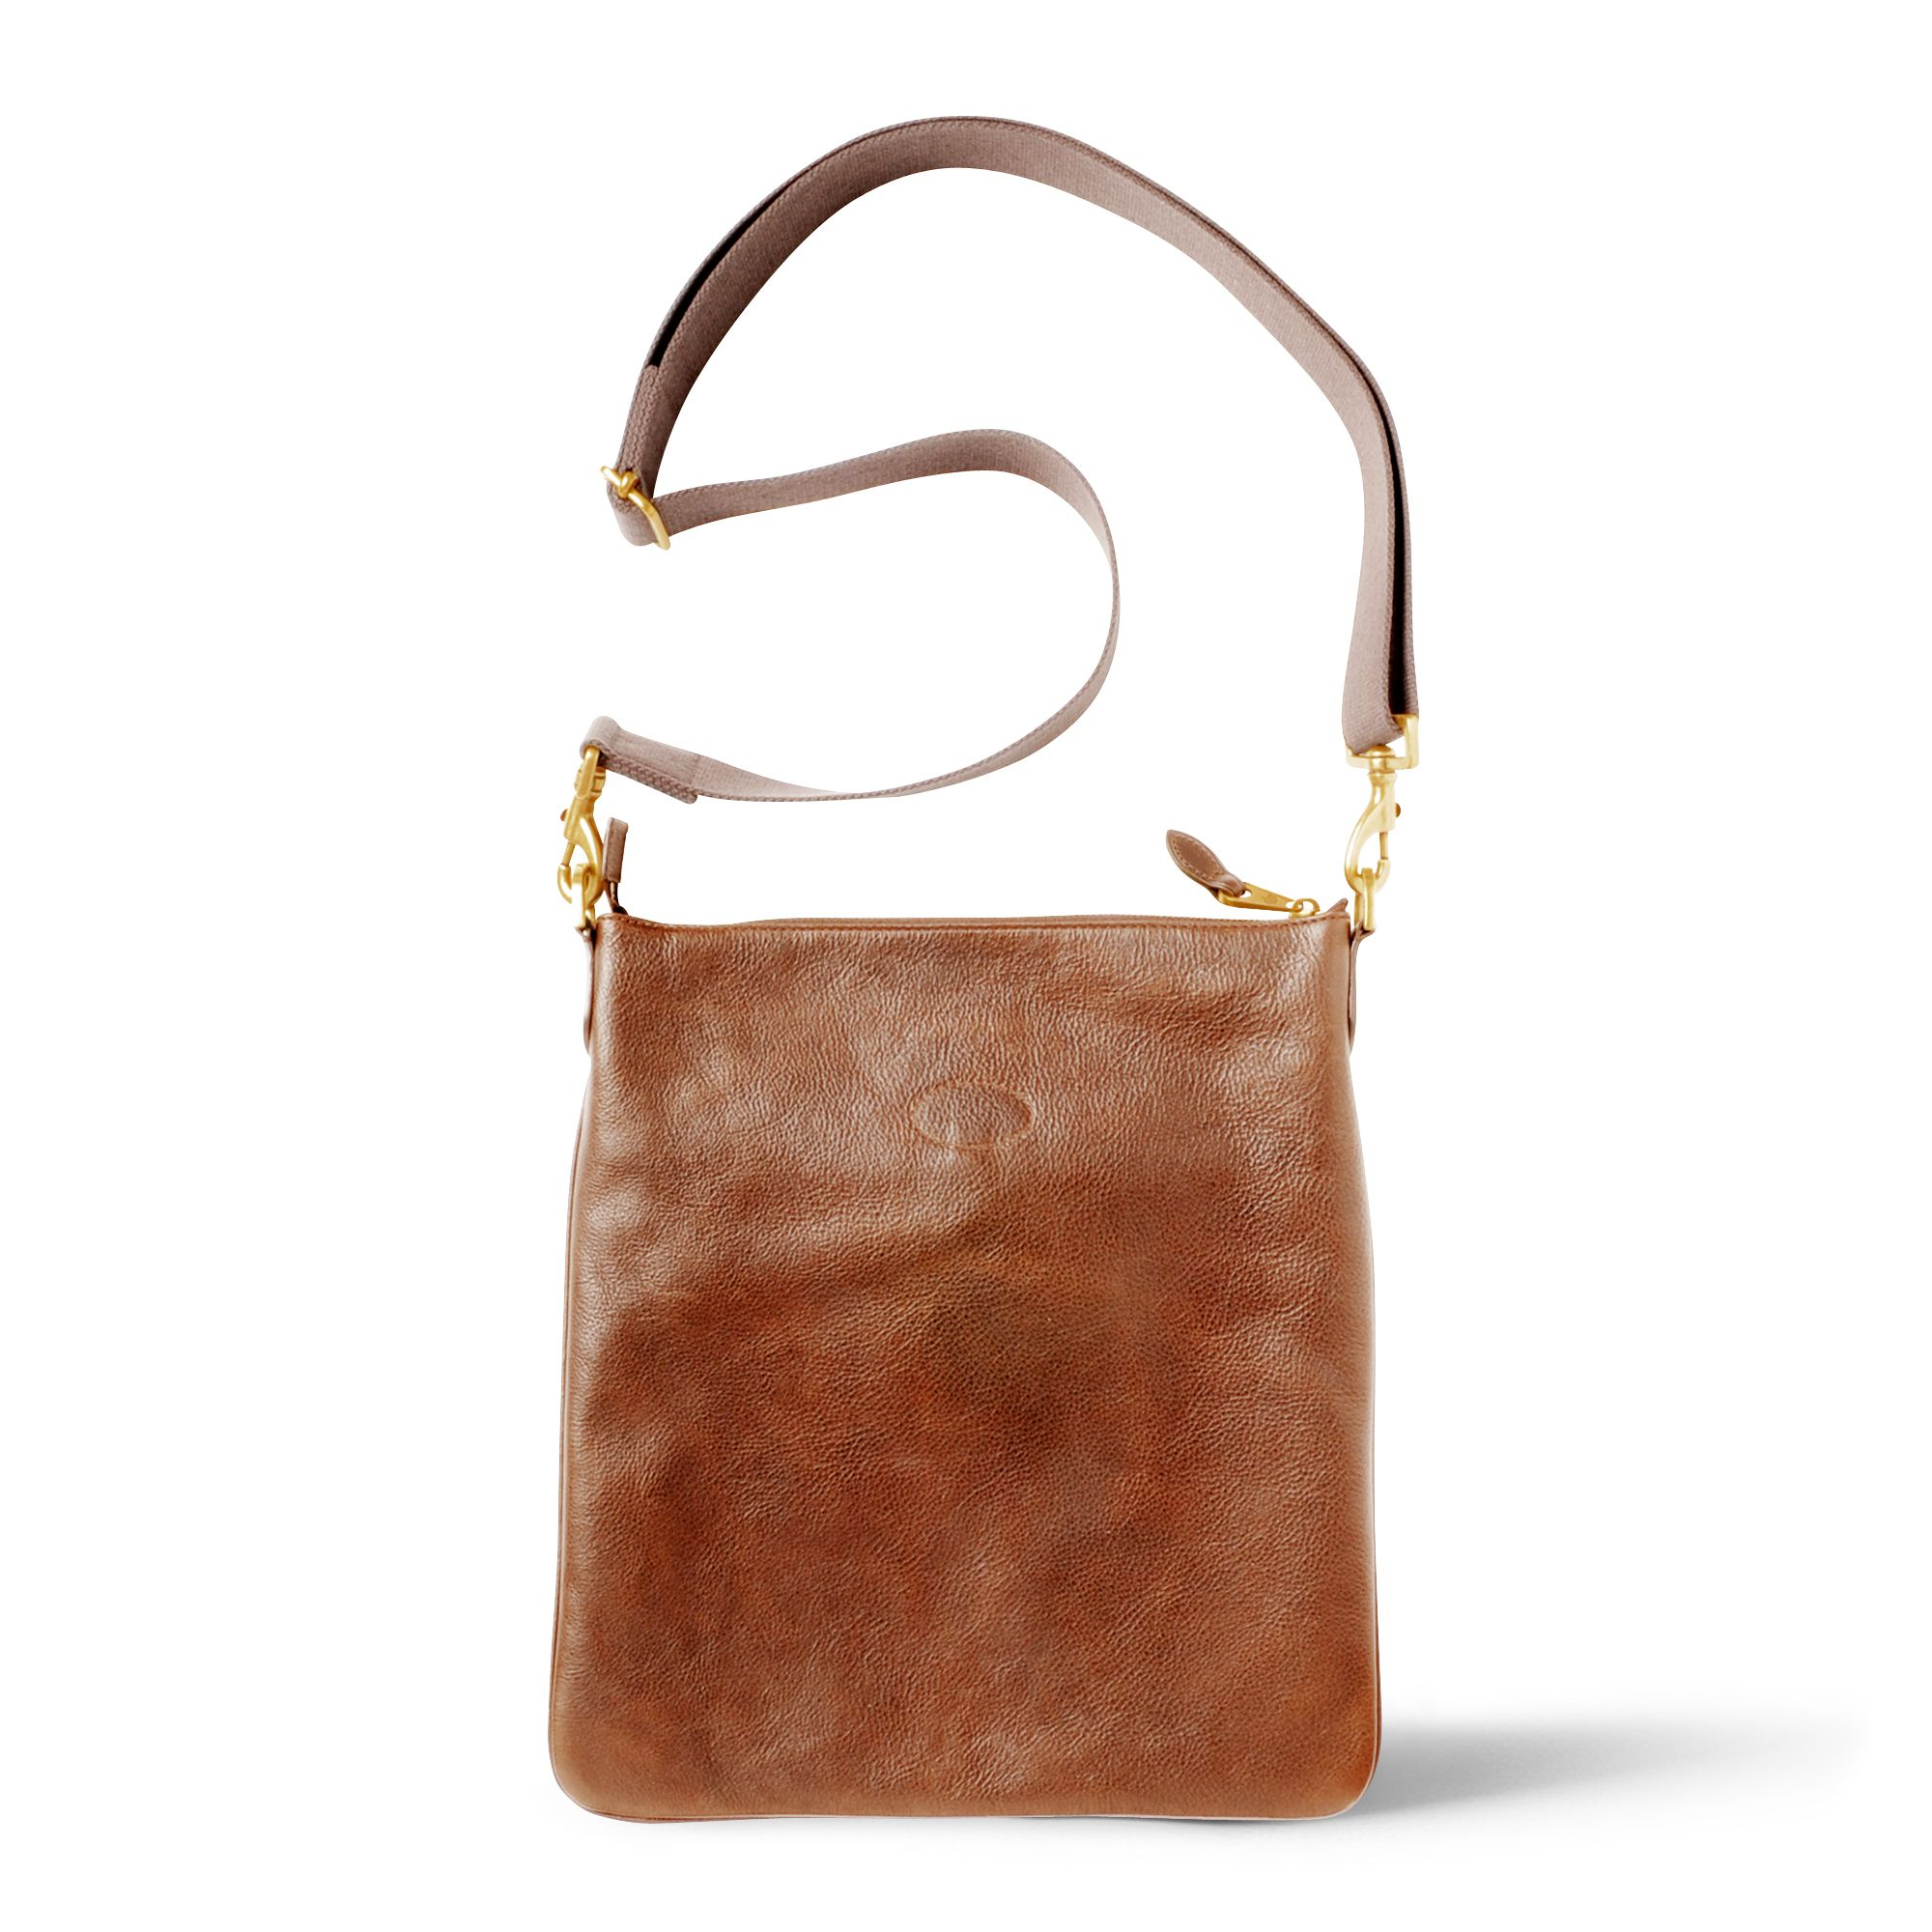 8d3f1400c3 ... promo code for mulberry seth messenger bag in brown lyst 12f9f efe09